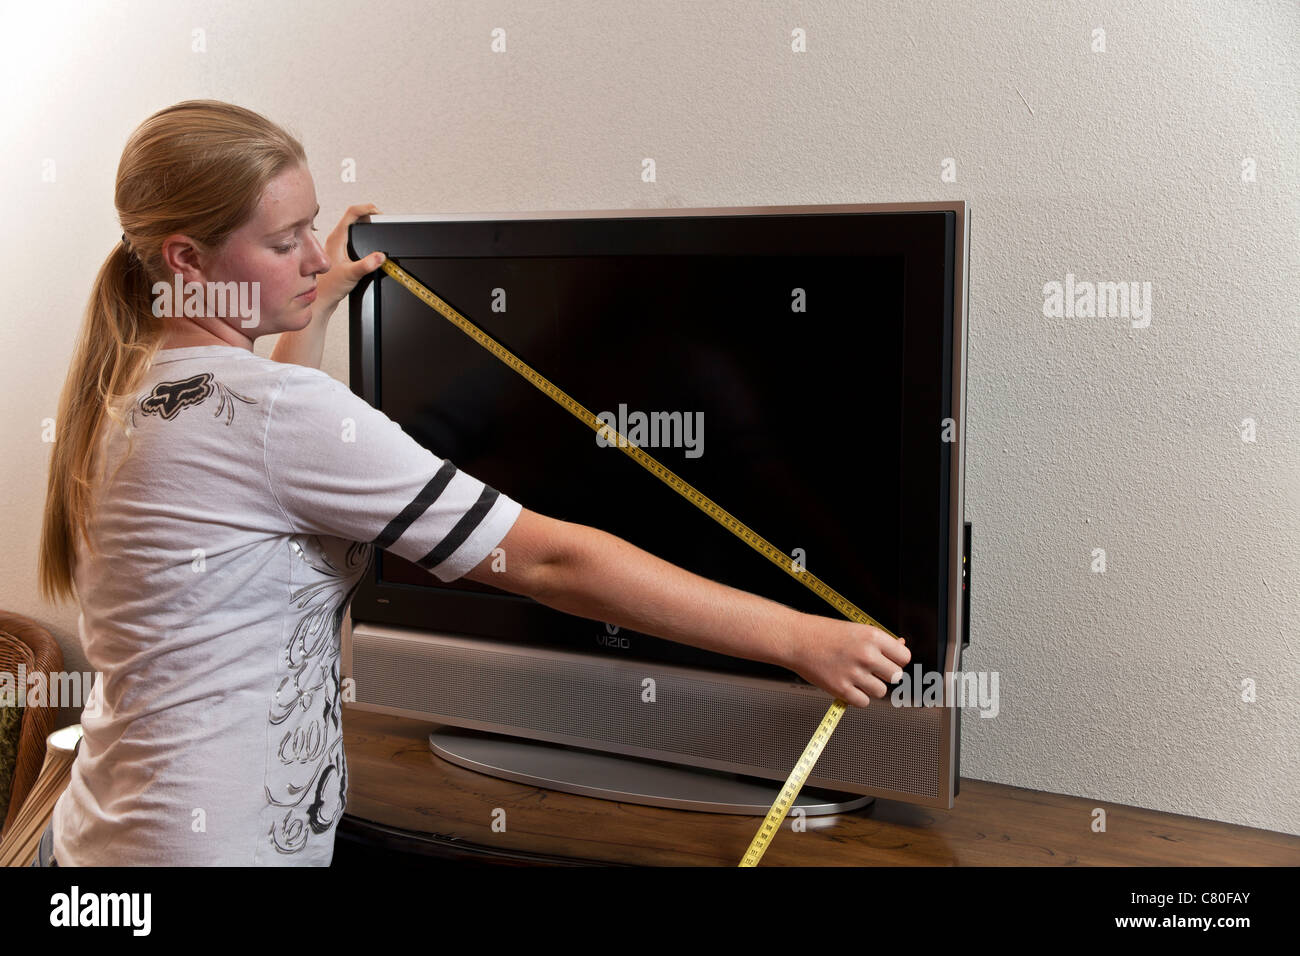 Teenage girl measures the dimensions of an 80 centimeter TV Screen. MR © Myrleen Pearson - Stock Image